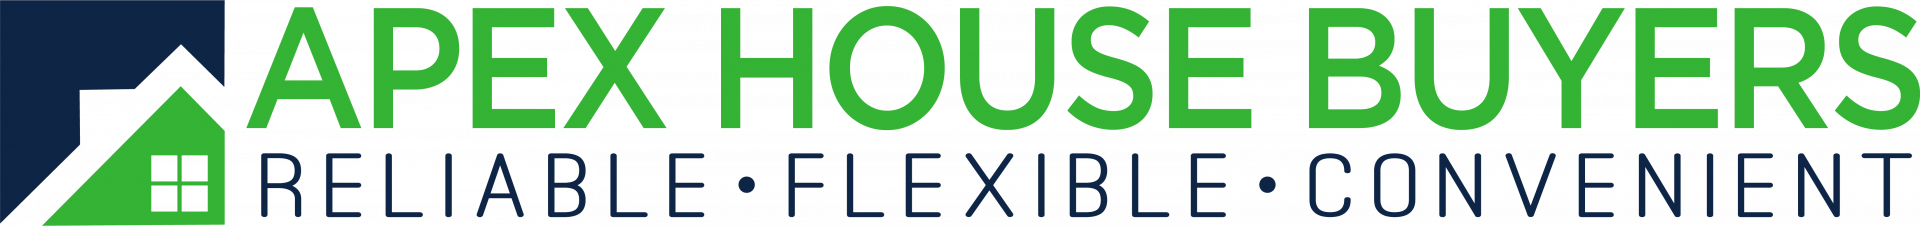 Apex House Buyers  logo